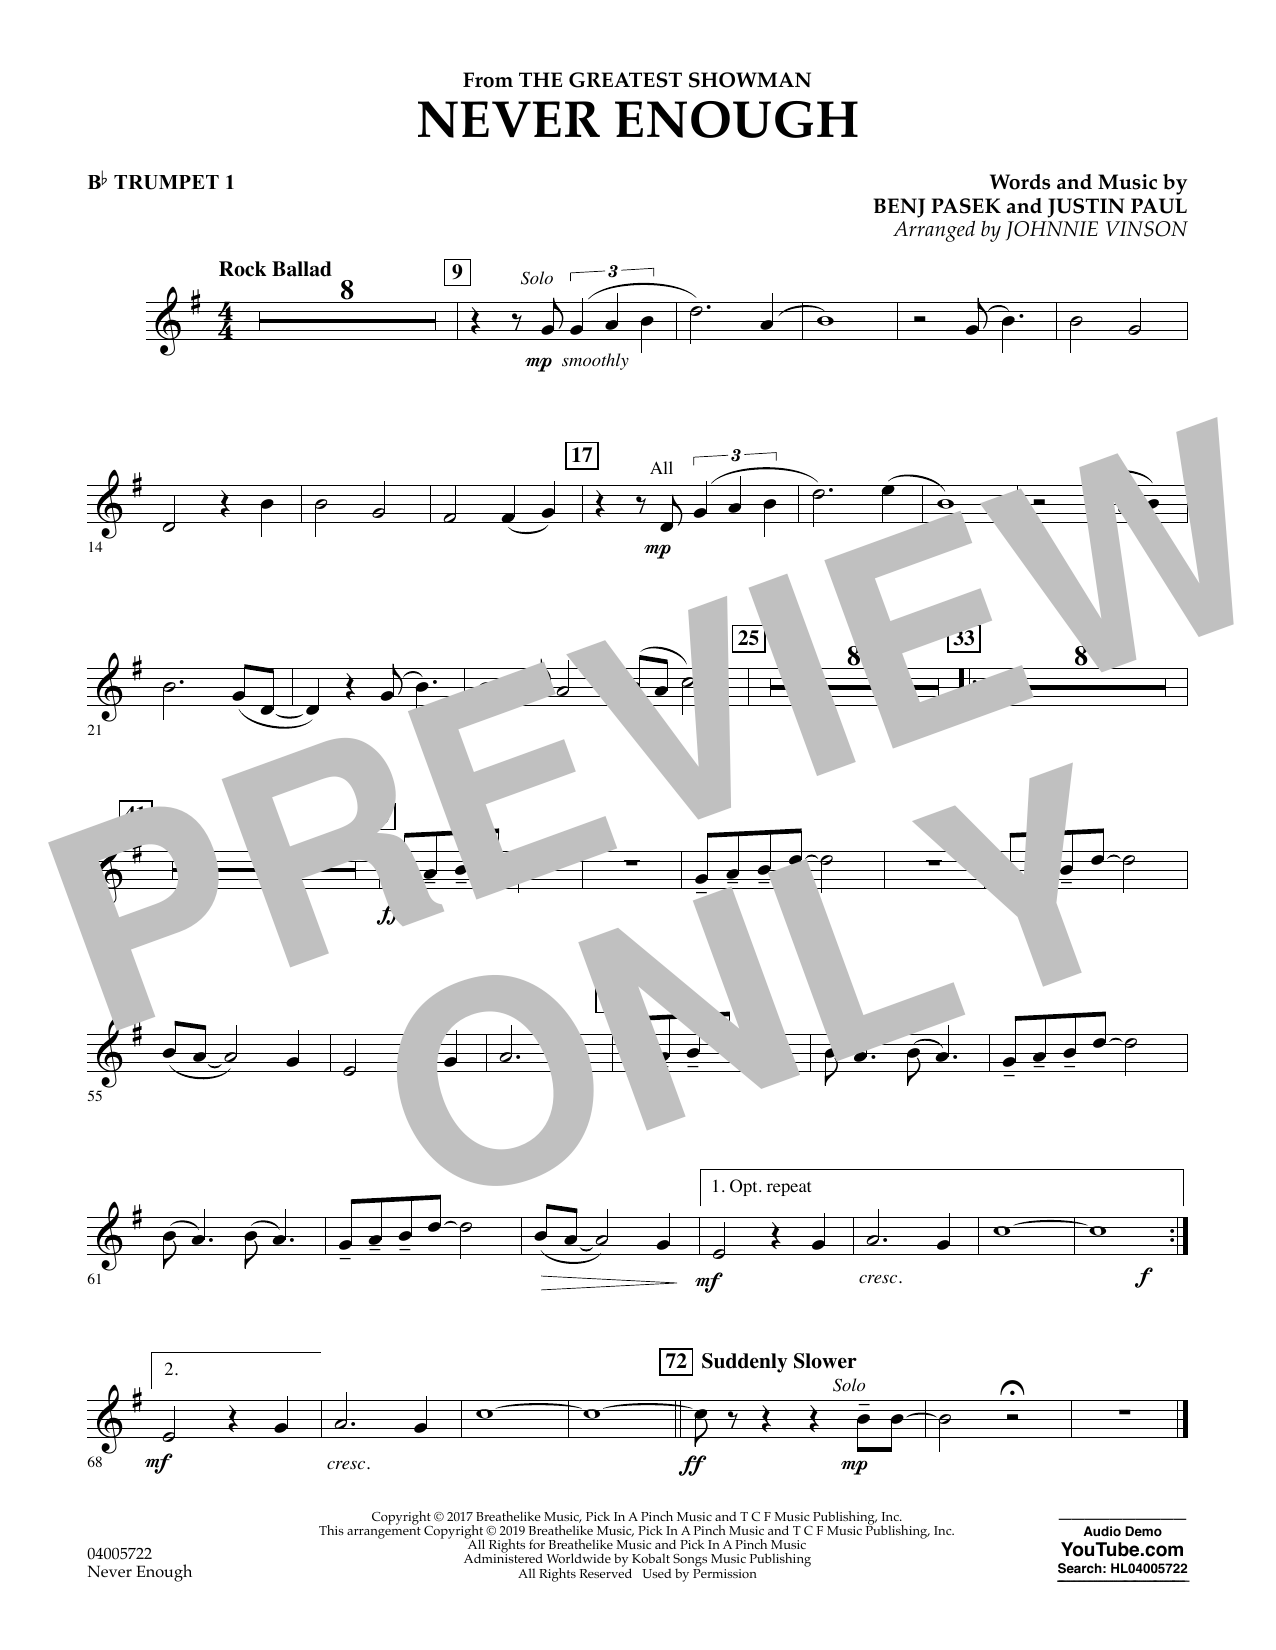 Never Enough (from The Greatest Showman) (arr. Johnnie Vinson) - Bb Trumpet 1 (Concert Band)